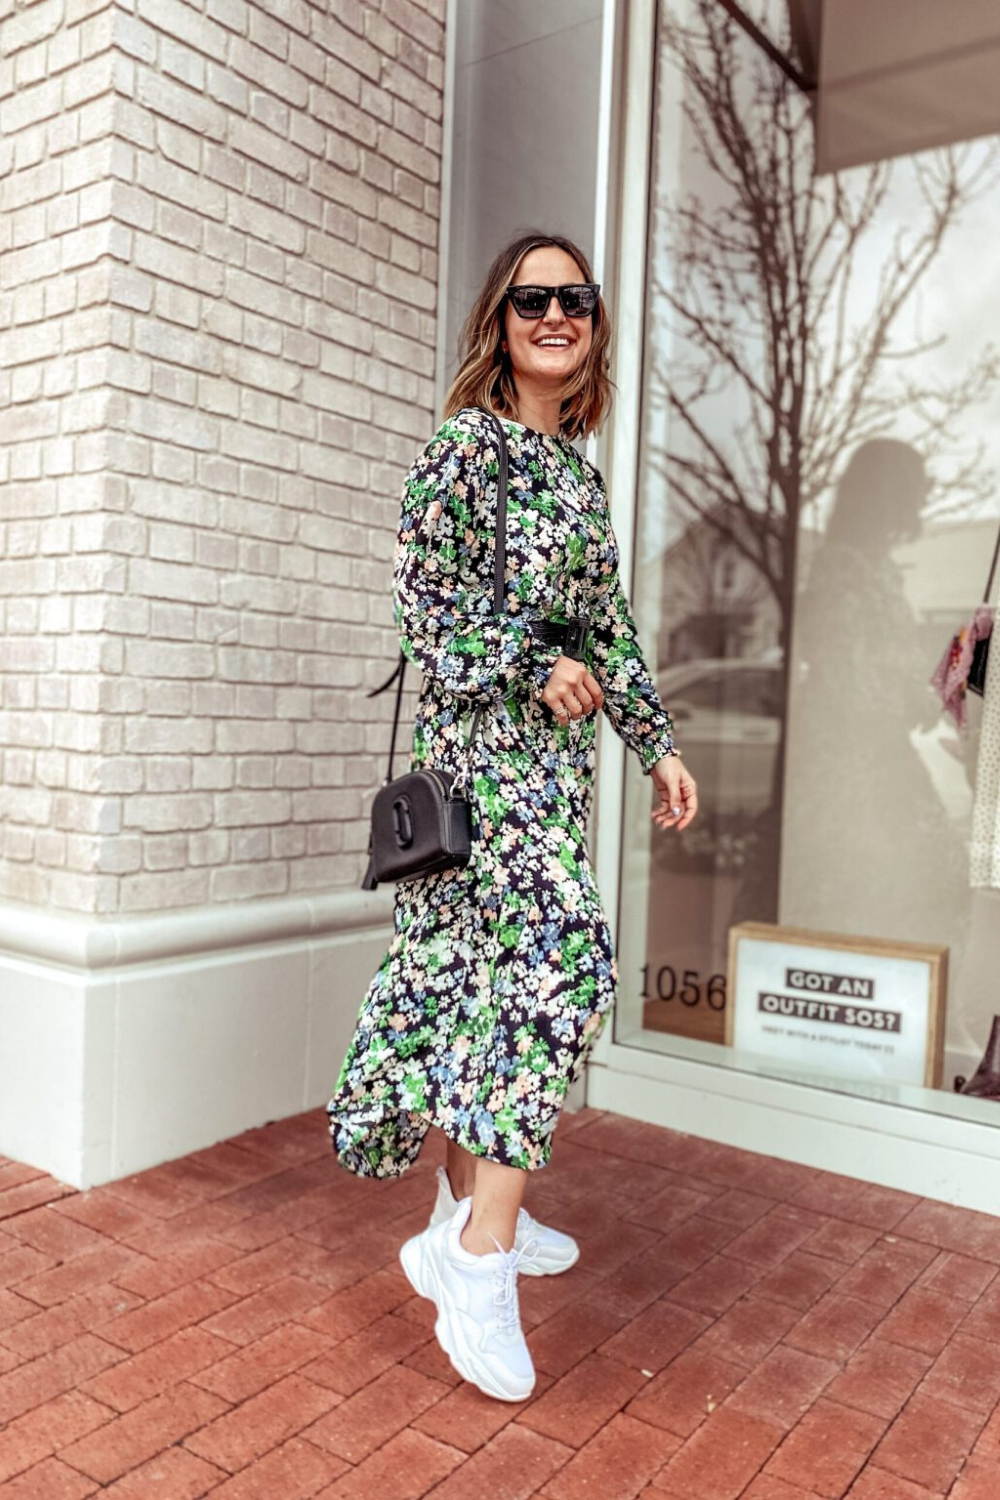 My Favorite H M Dresses Right Now Charmed By Camille In 2020 Floral Dress Outfits Spring Dresses Casual Floral Dress Casual